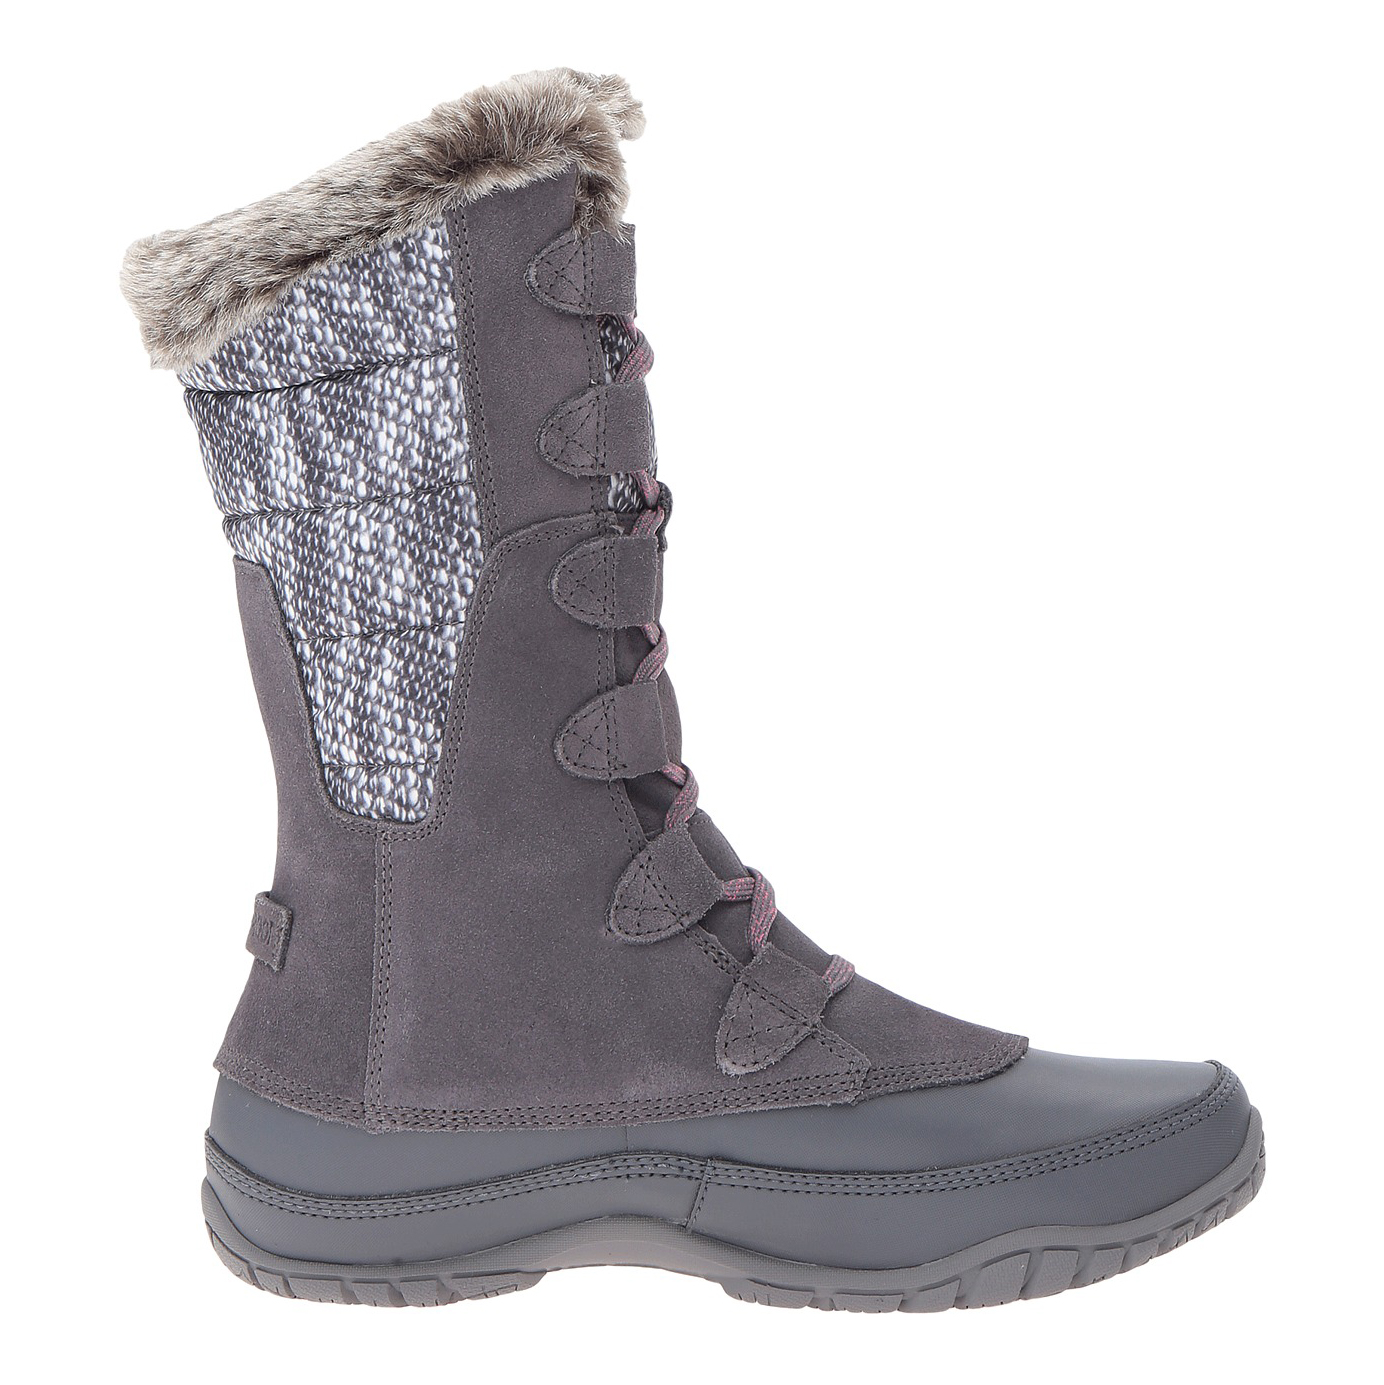 <p>The North Face Boots</p>